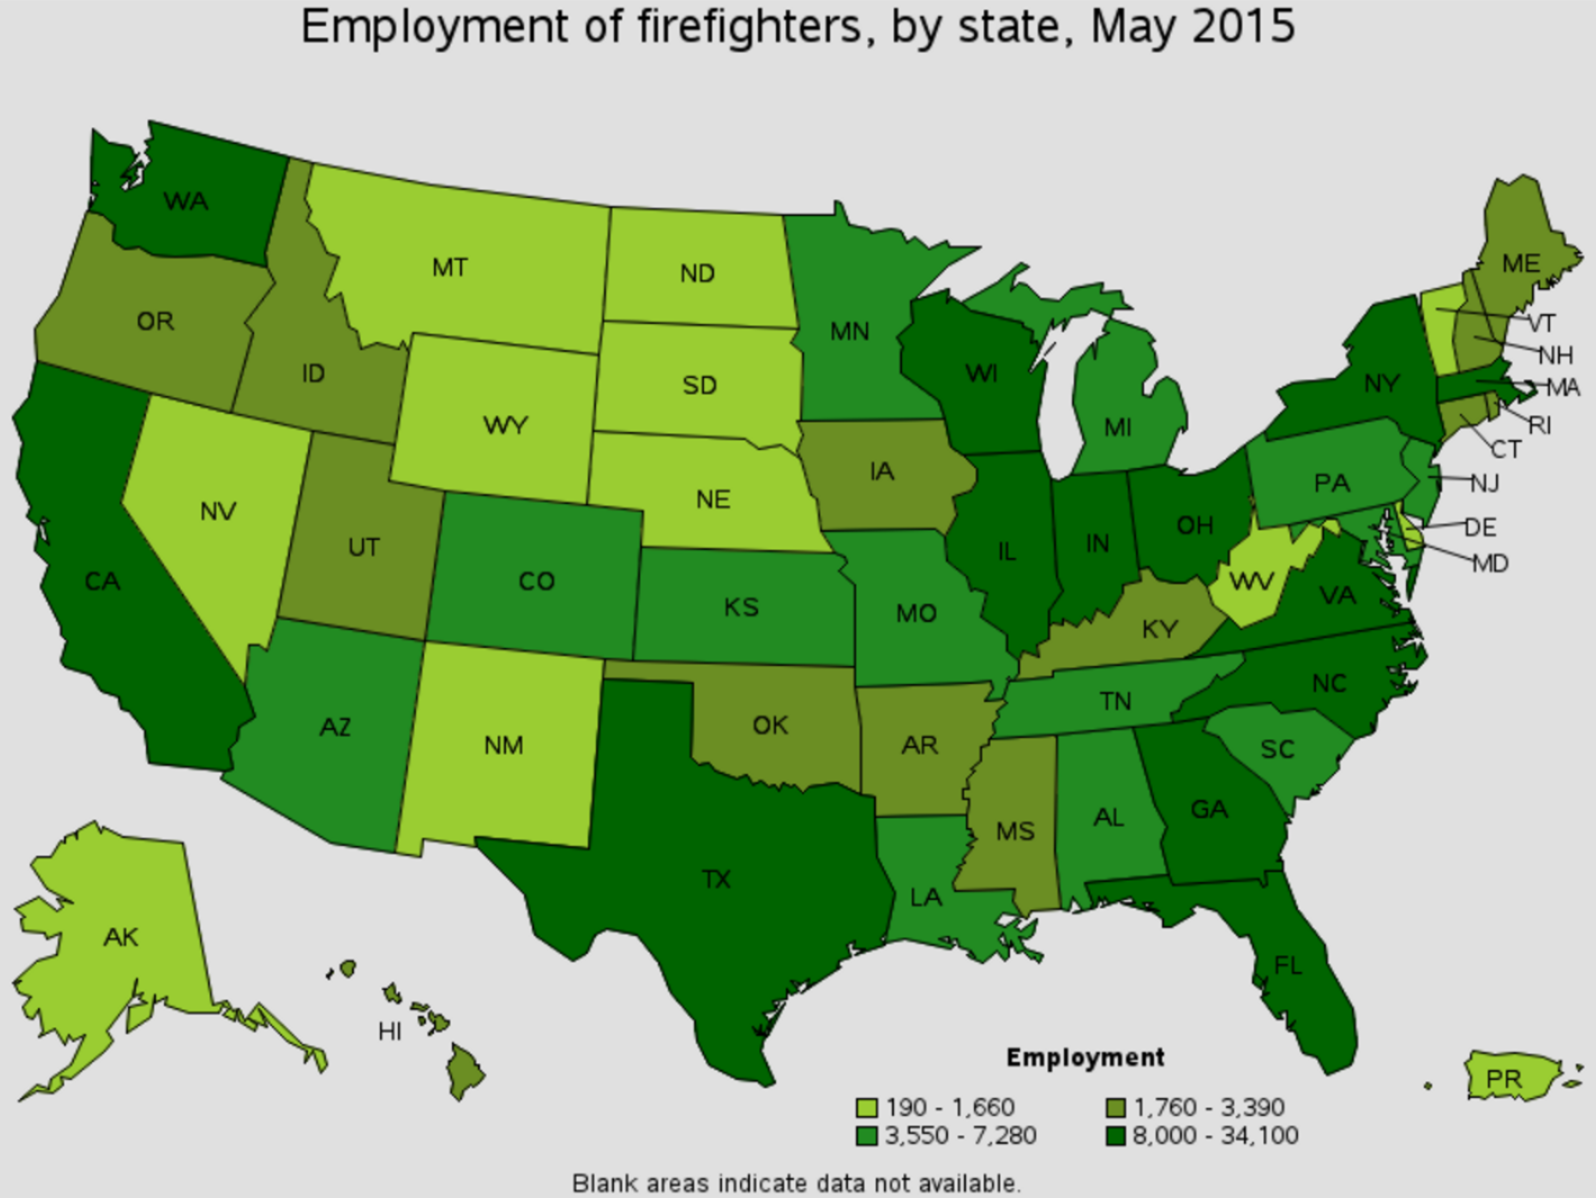 firefighter job outlook by state Conyers Georgia